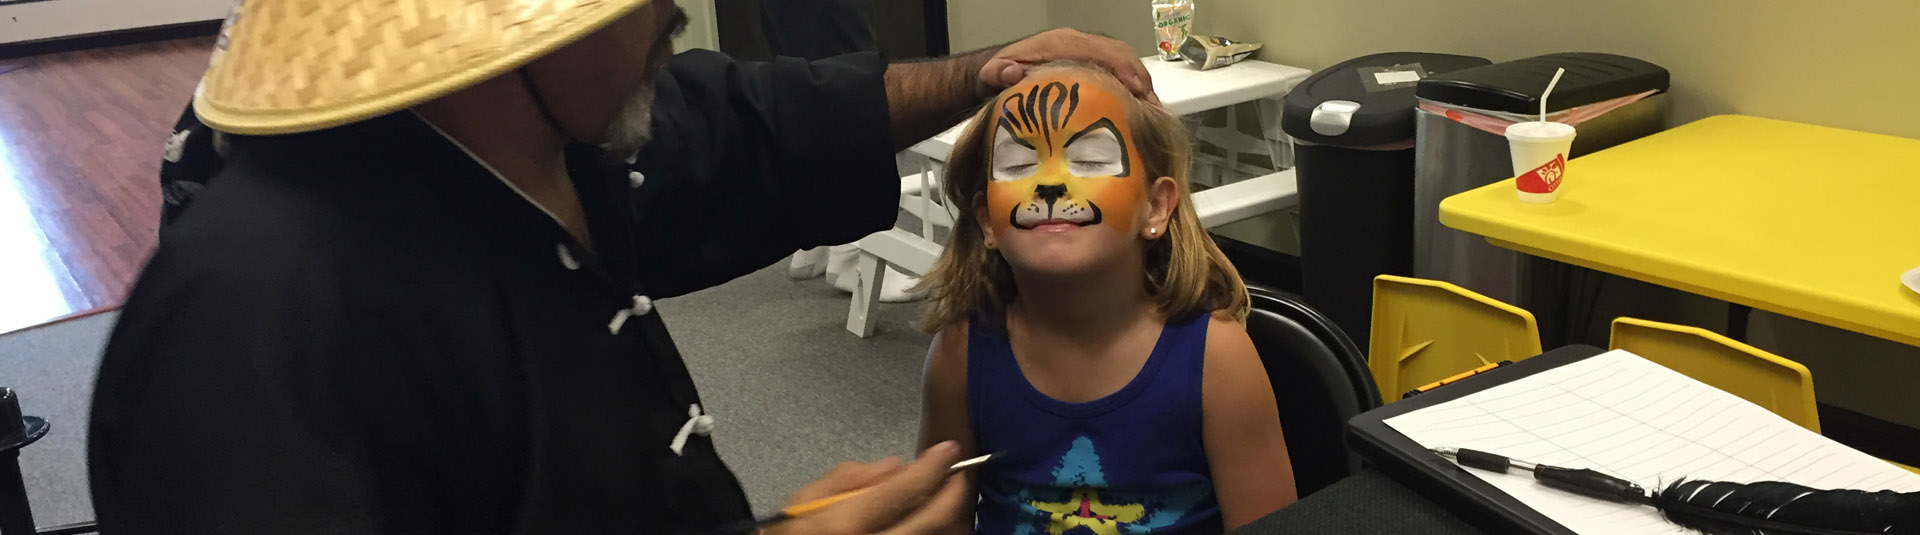 young girl getting her face painted | Whiz Kids Play Zone & Party Place - Naples, Florida